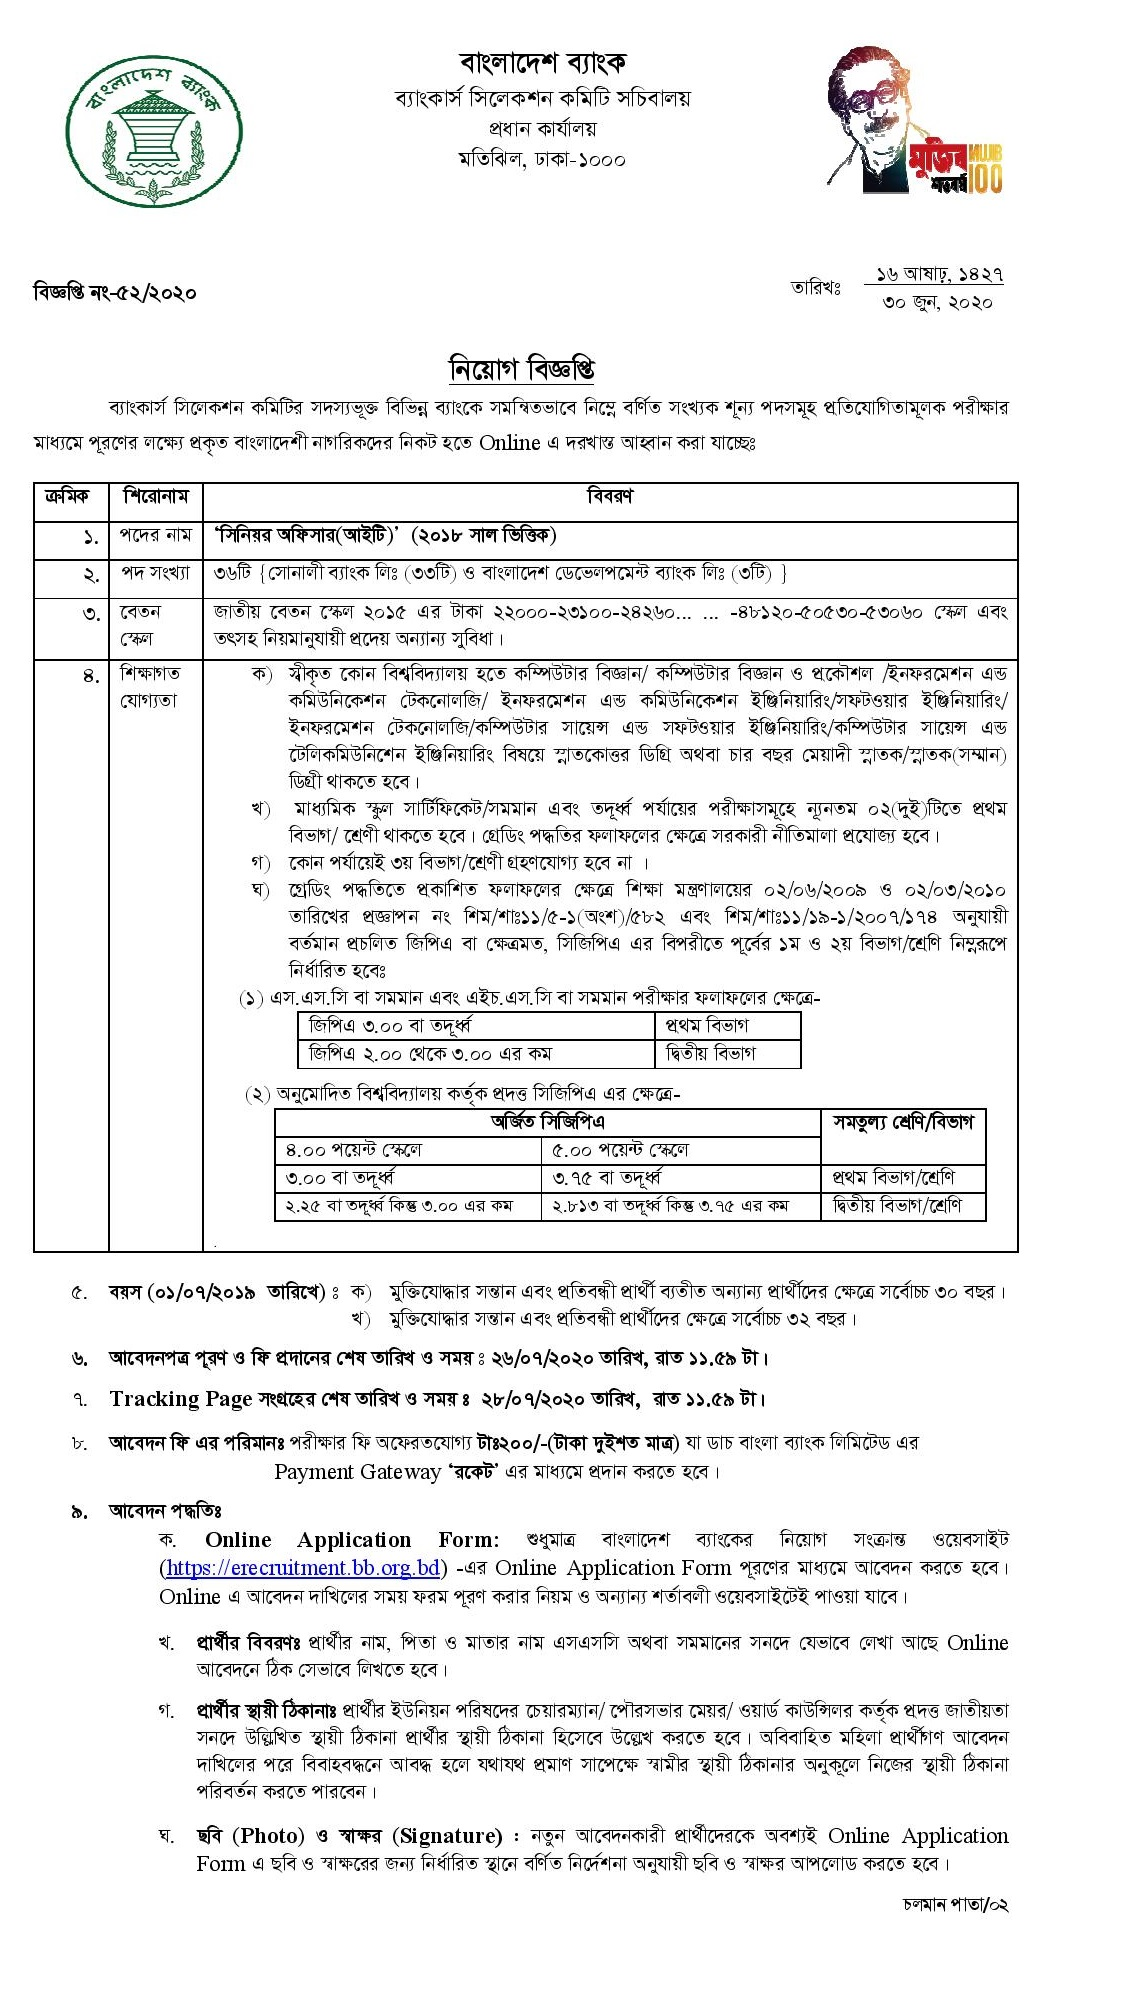 Sonali Bank Limited Job Circular 2020